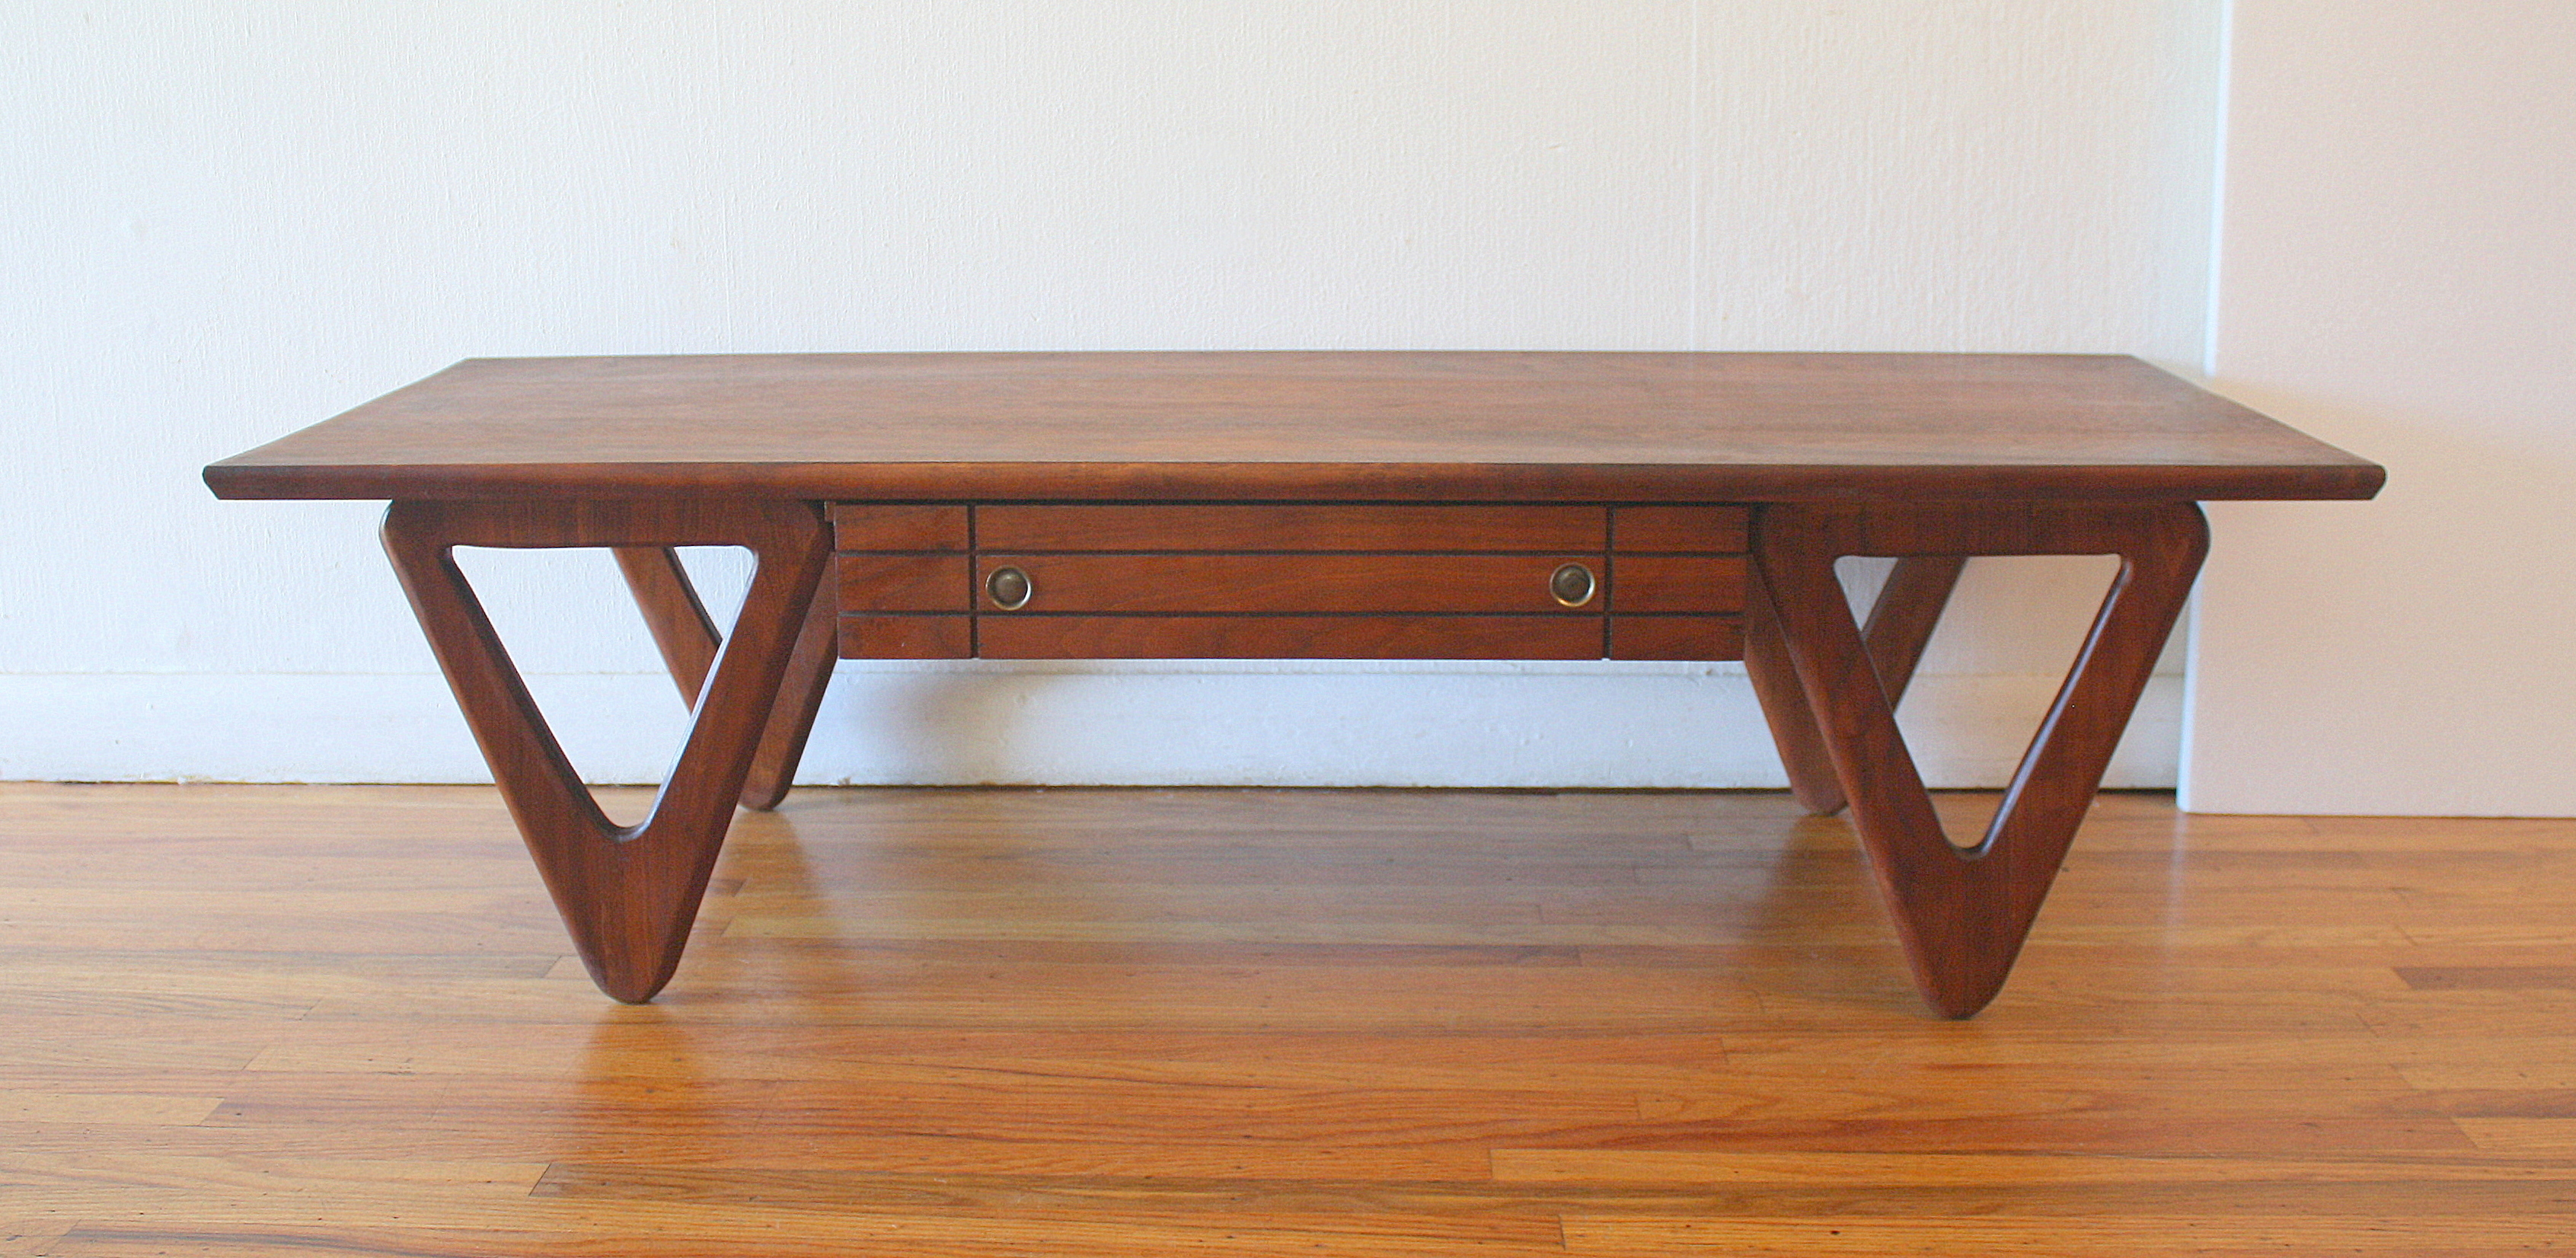 mcm coffee table with angled sculpted base 4